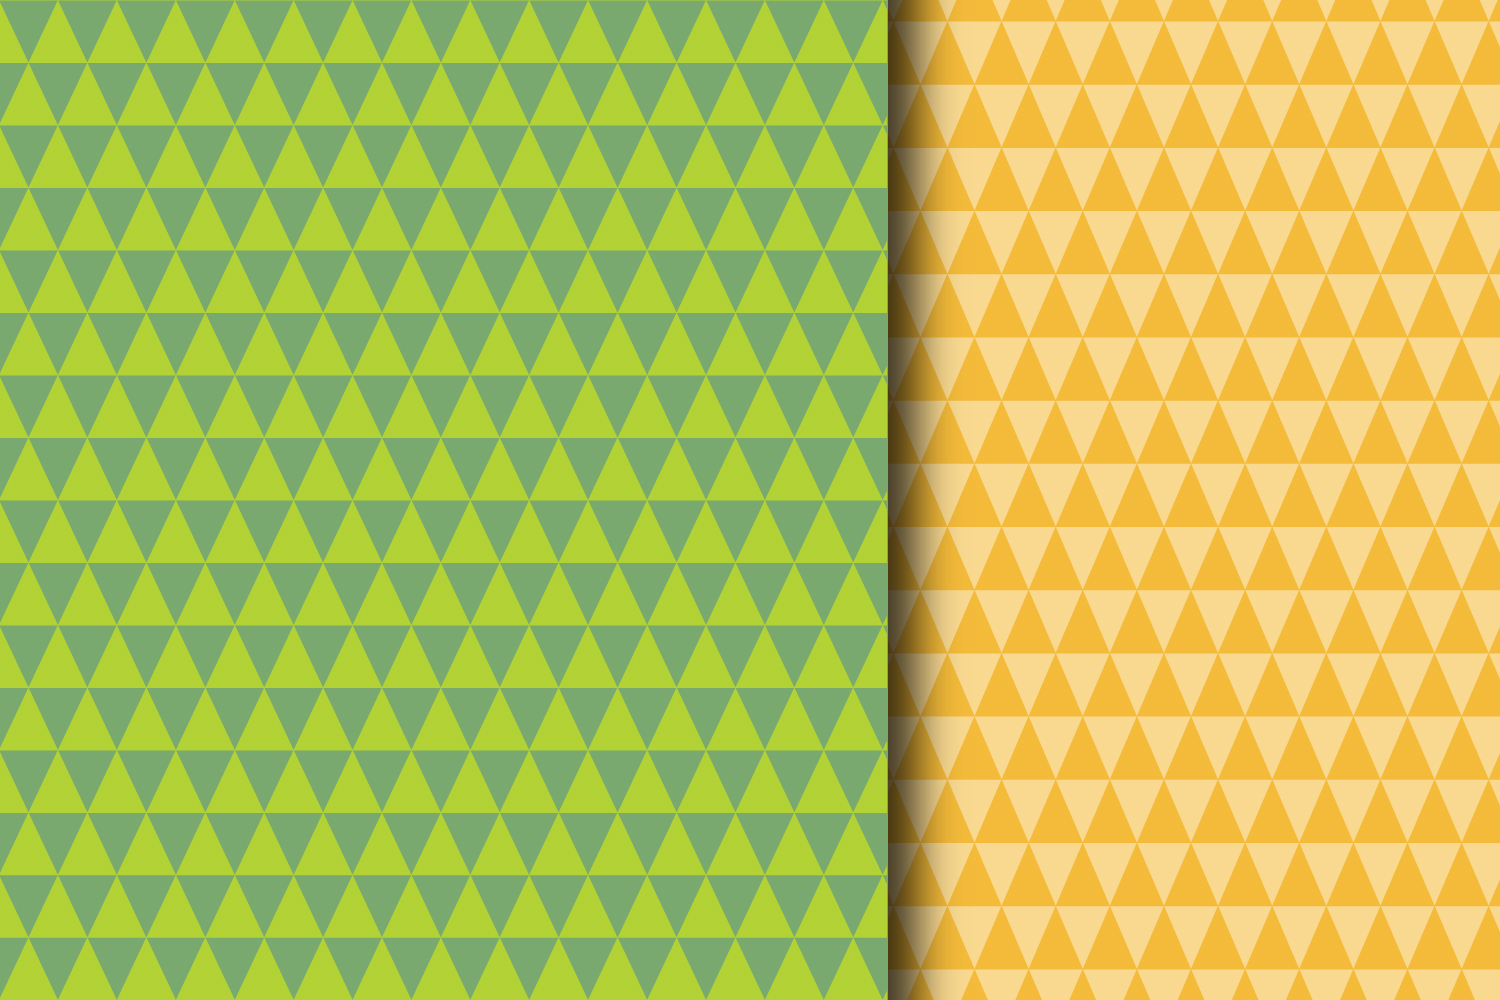 TRIANGLE PATTERN DIGITAL PAPERS example image 2